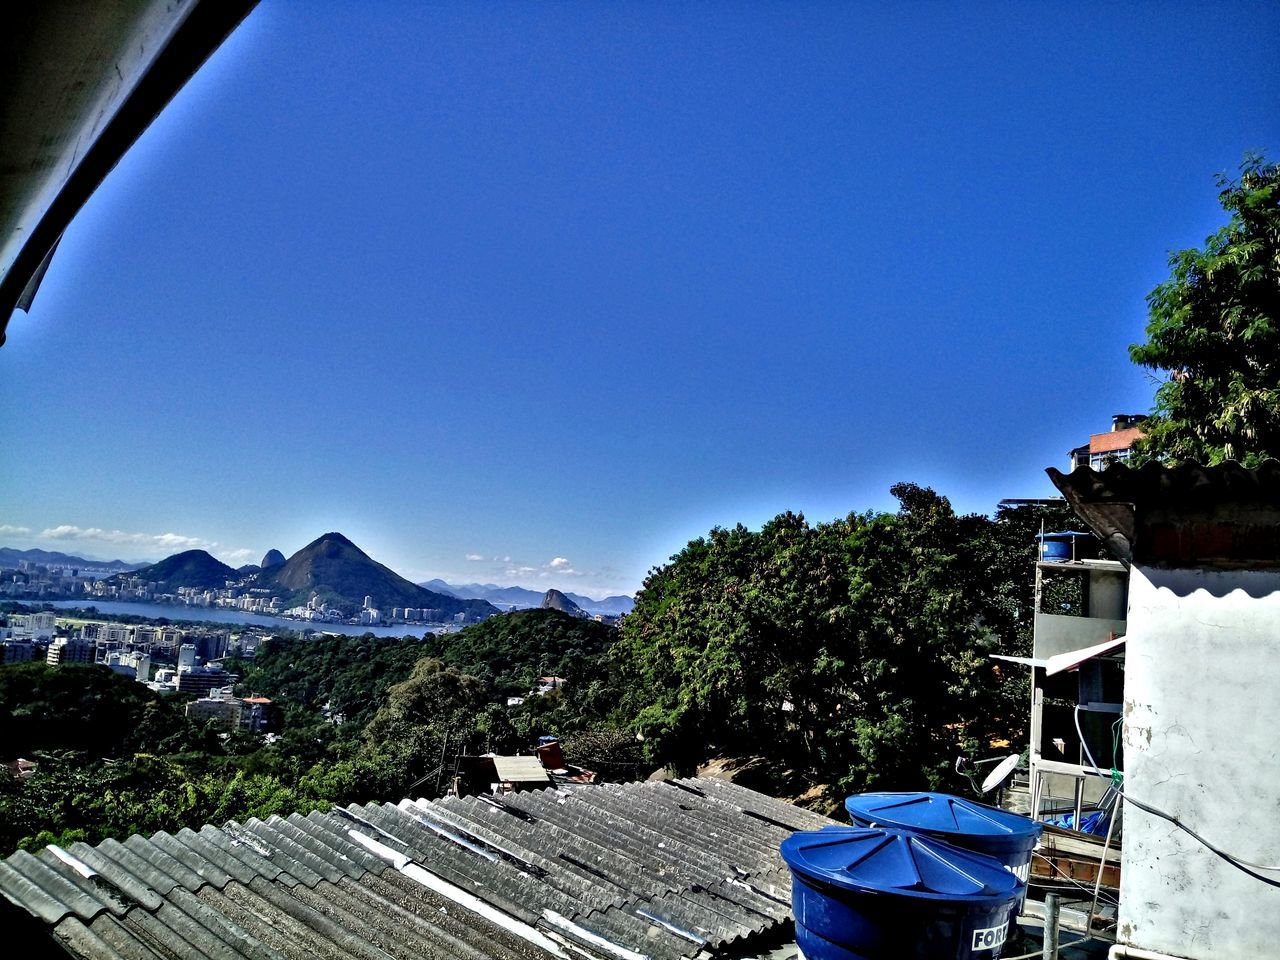 blue, architecture, building exterior, built structure, tree, no people, day, clear sky, outdoors, nature, mountain, sky